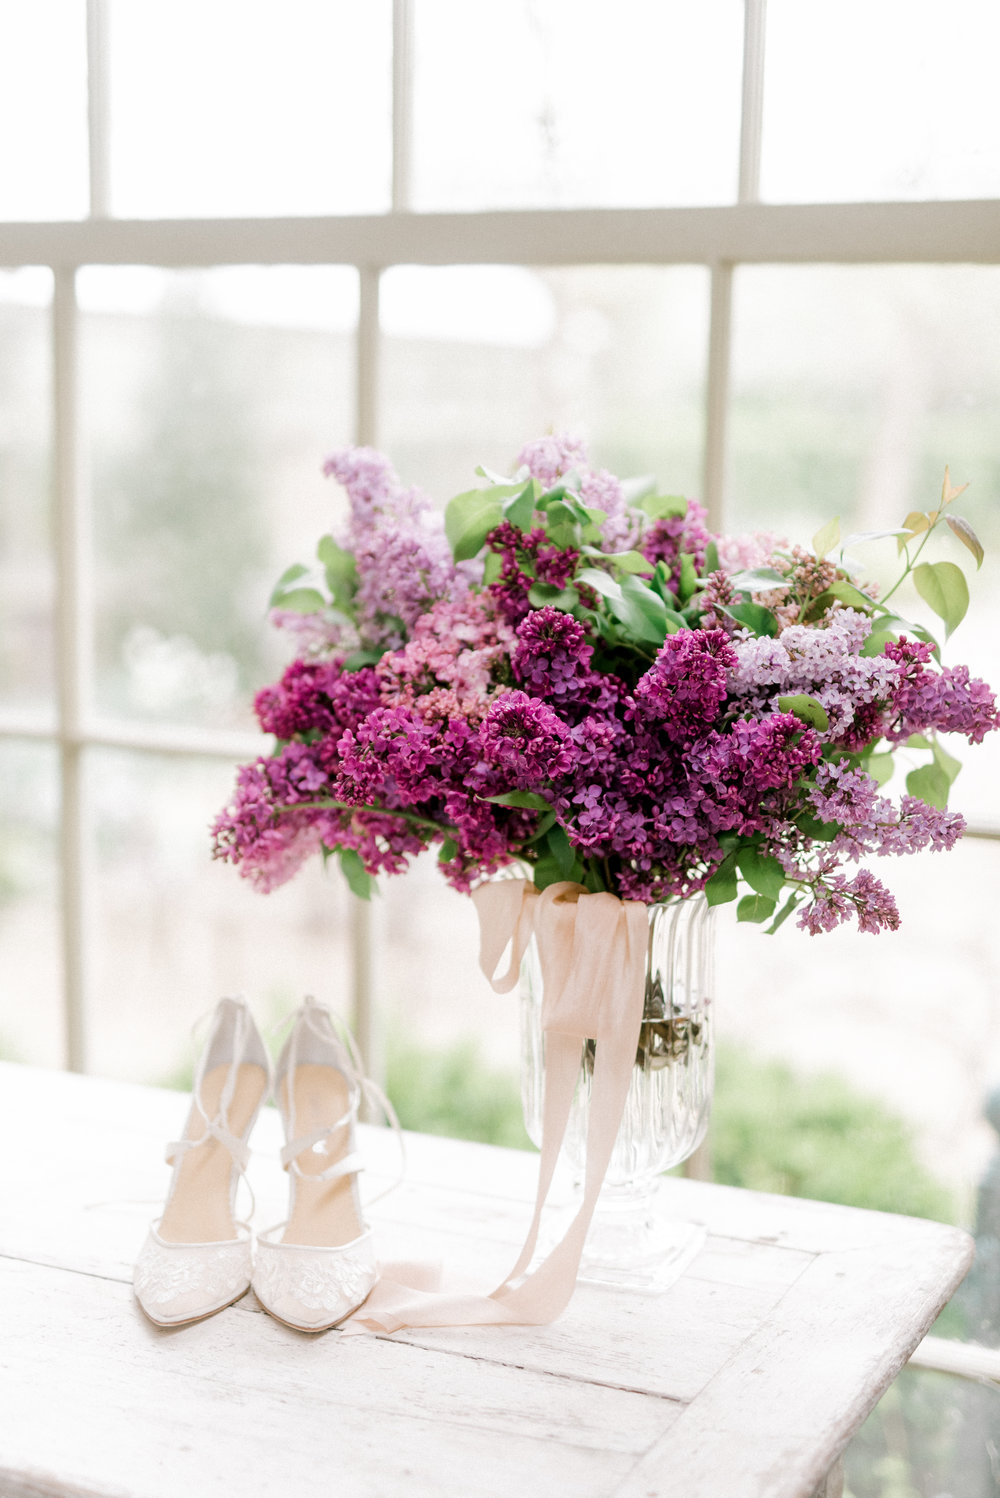 haley-richter-photography-jardin-de-buis-wedding-photos-greenhouse-wedding-bhldn-gown-lilac-wedding-bouquet-beaded-wedding-gown-new-jersey-weddings-garden-wedding-lilac-wedding-bouquet-spring-bella-belle-wedding-shoes-lace